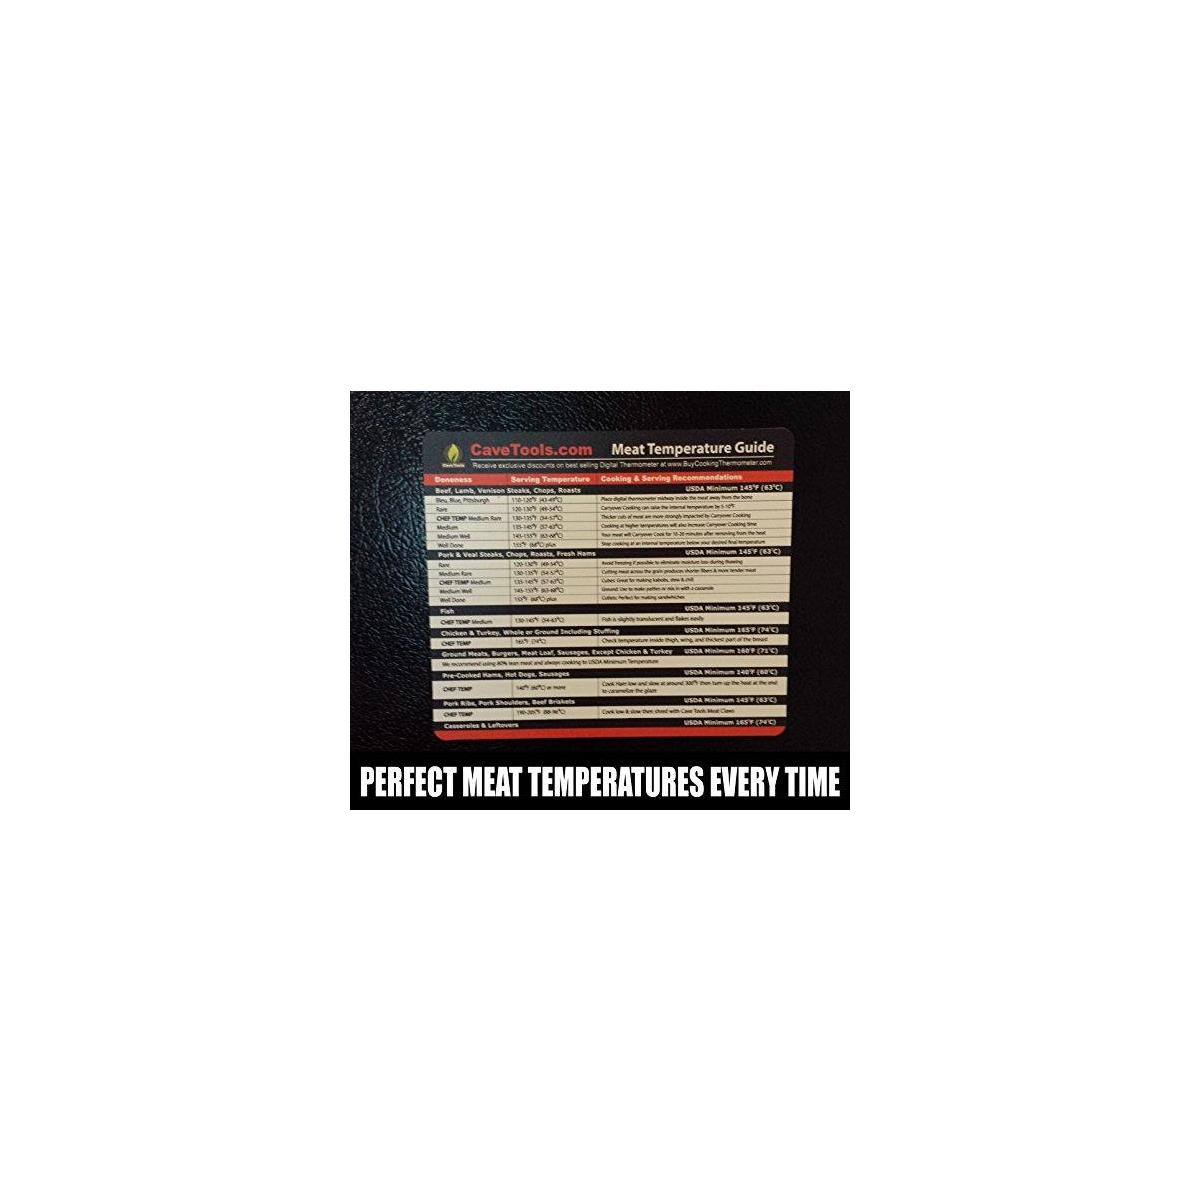 Meat Smoking Magnet (lg)+ Internal Temperature Chart (lg)- Temp Guide Include All Food for Kitchen Cooking & F to C Conversion - Use Digital Thermometer to Check Temperatures of Chicken Steak Turkey